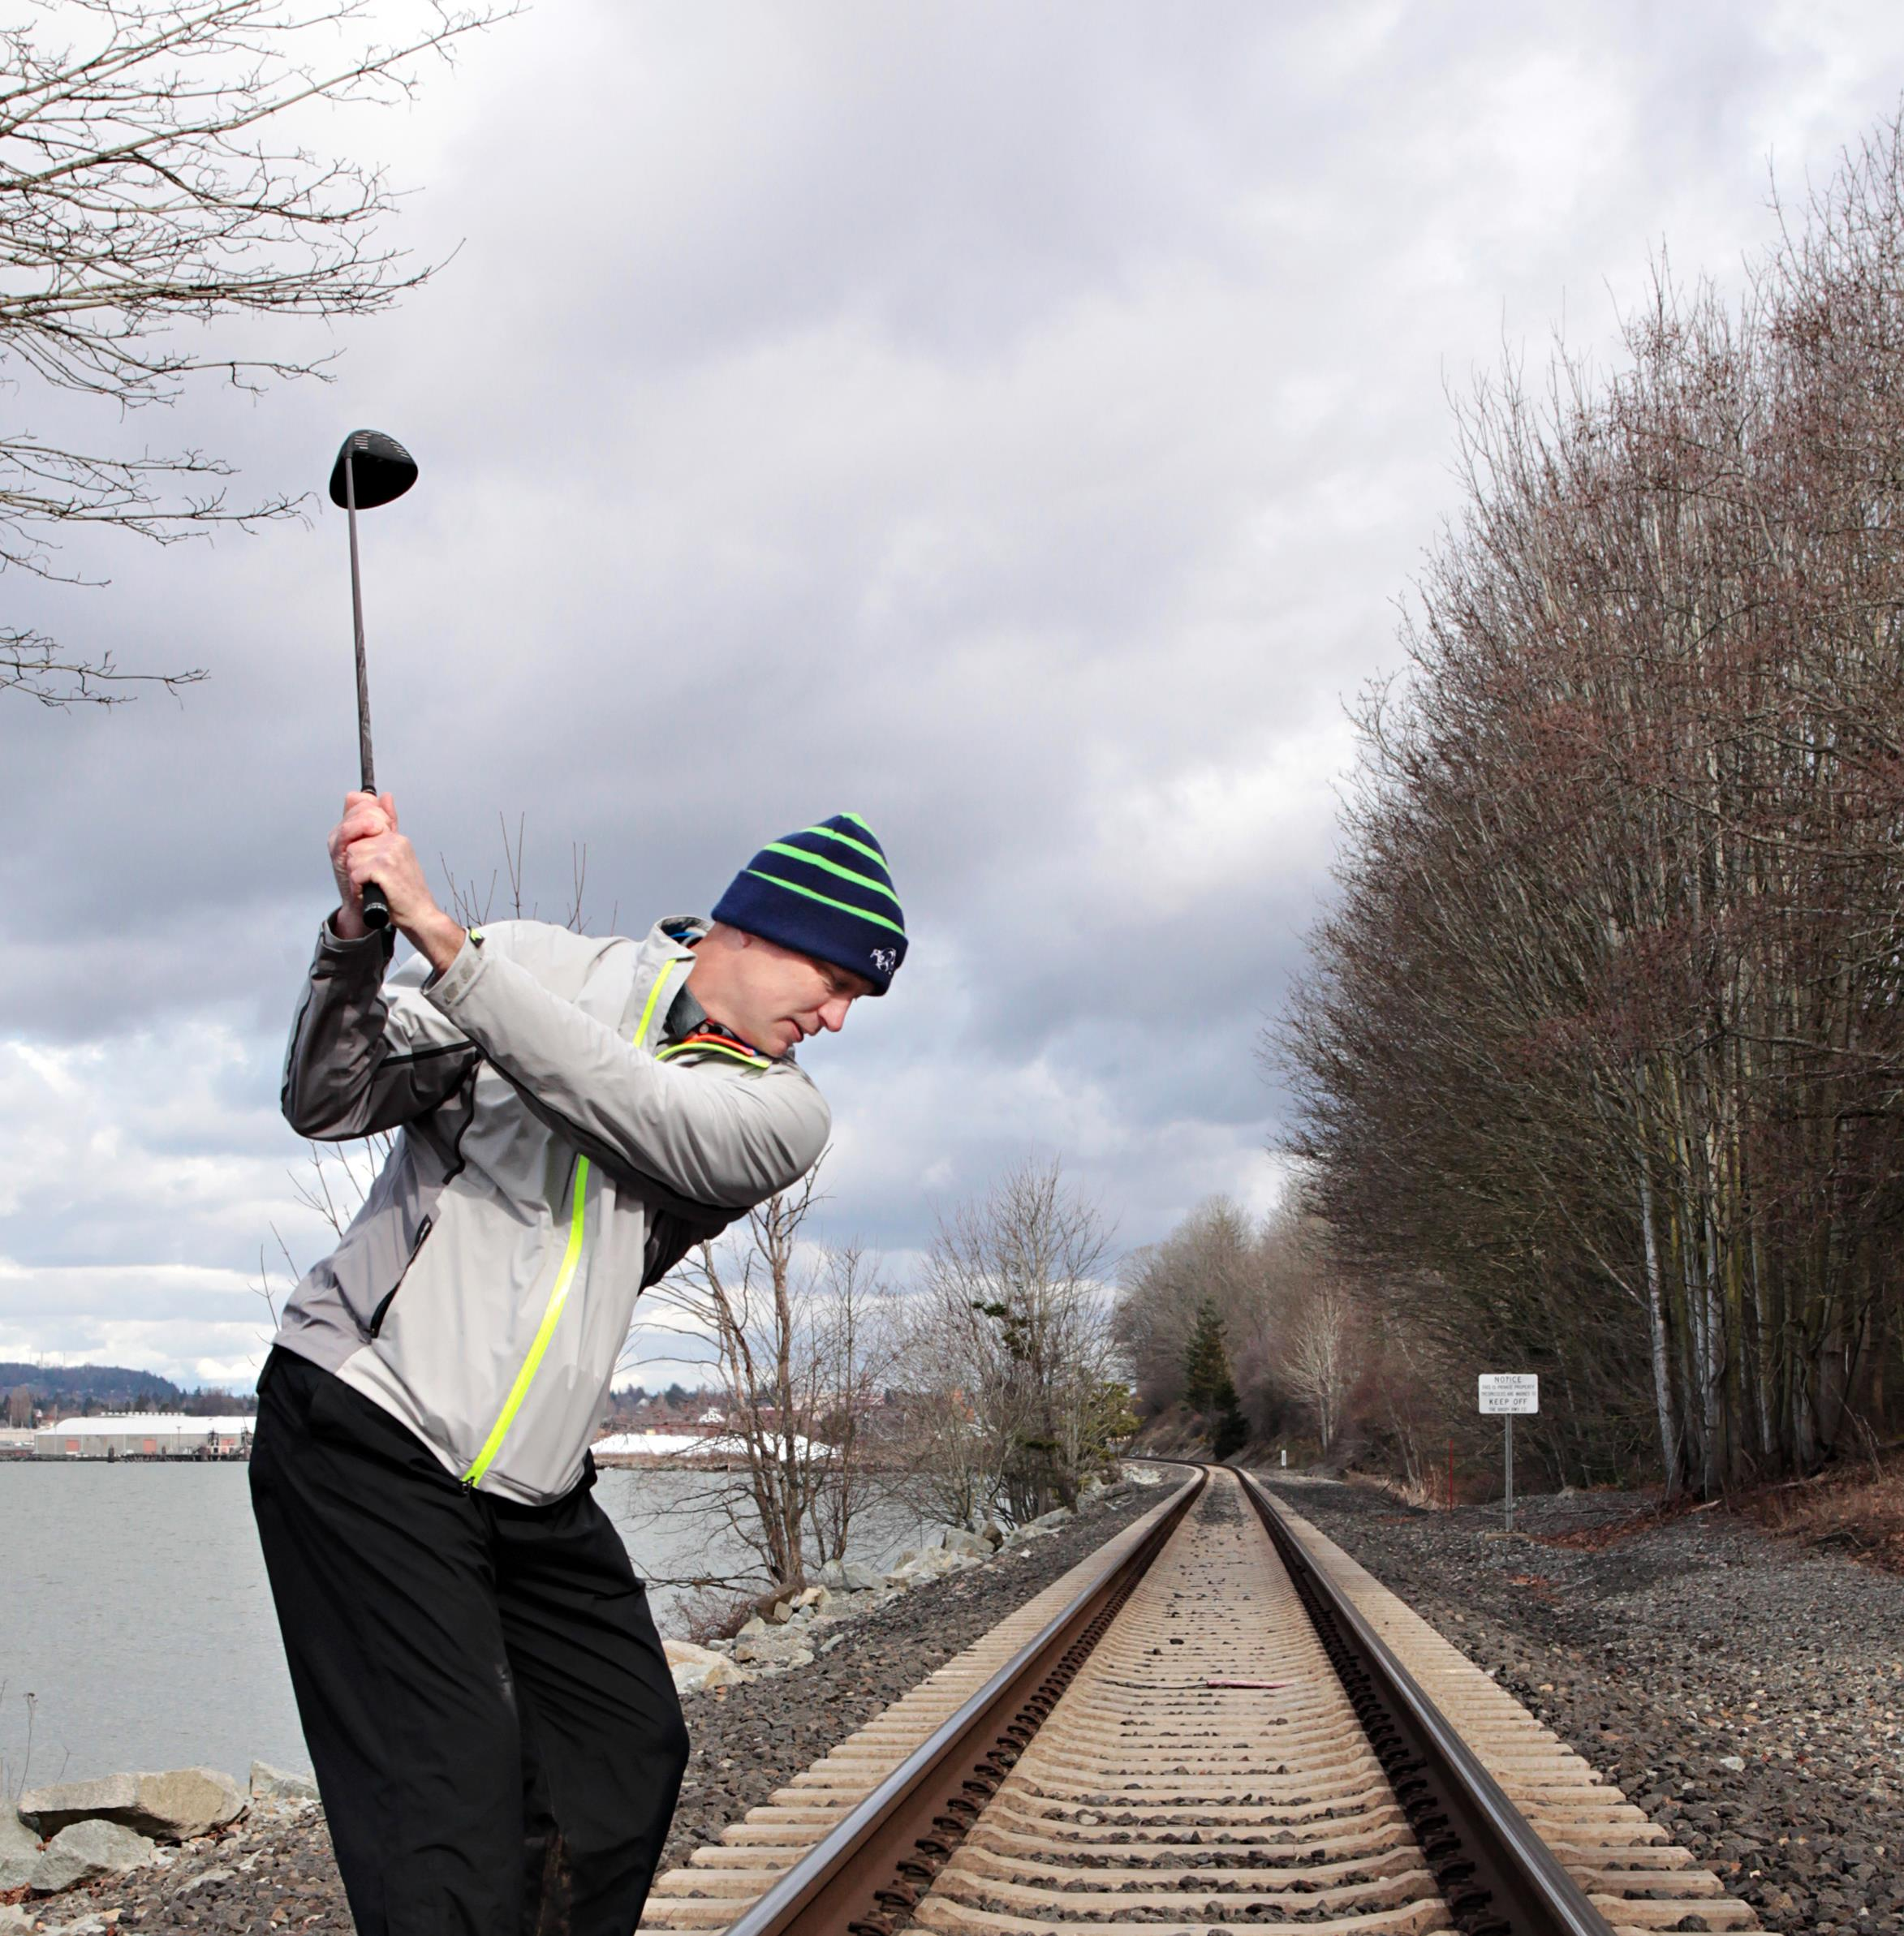 Brian Weeda golfing on the train tracks